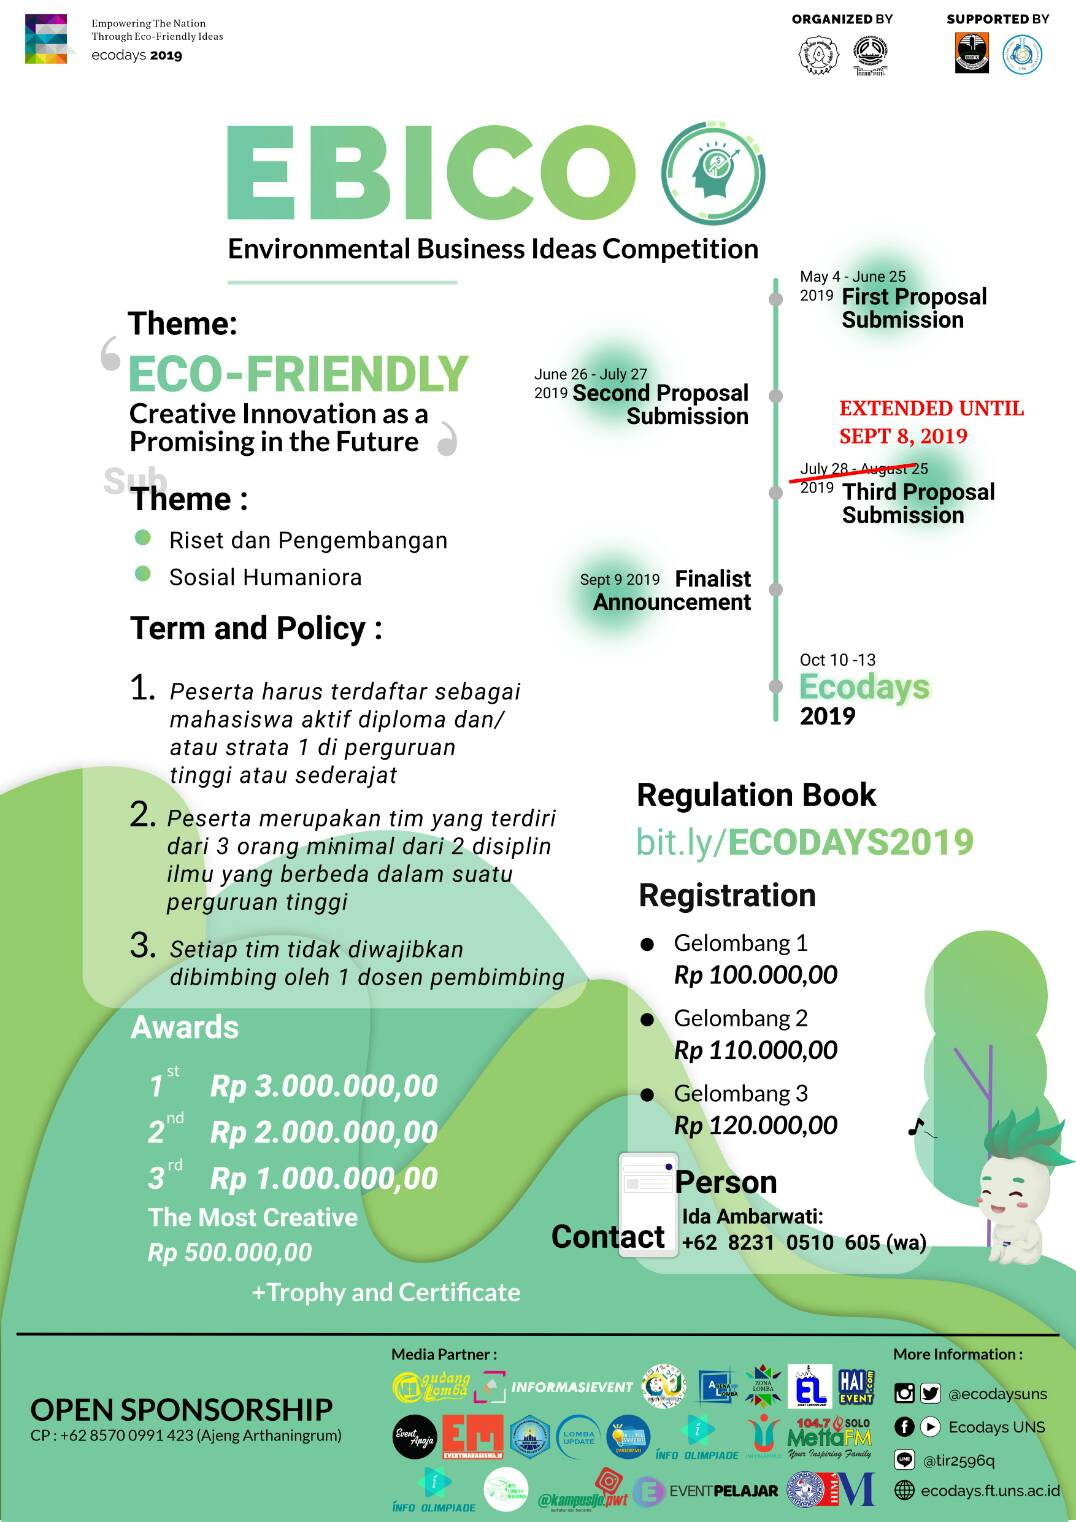 EBICO Environmental Business Ideas Competition 2019